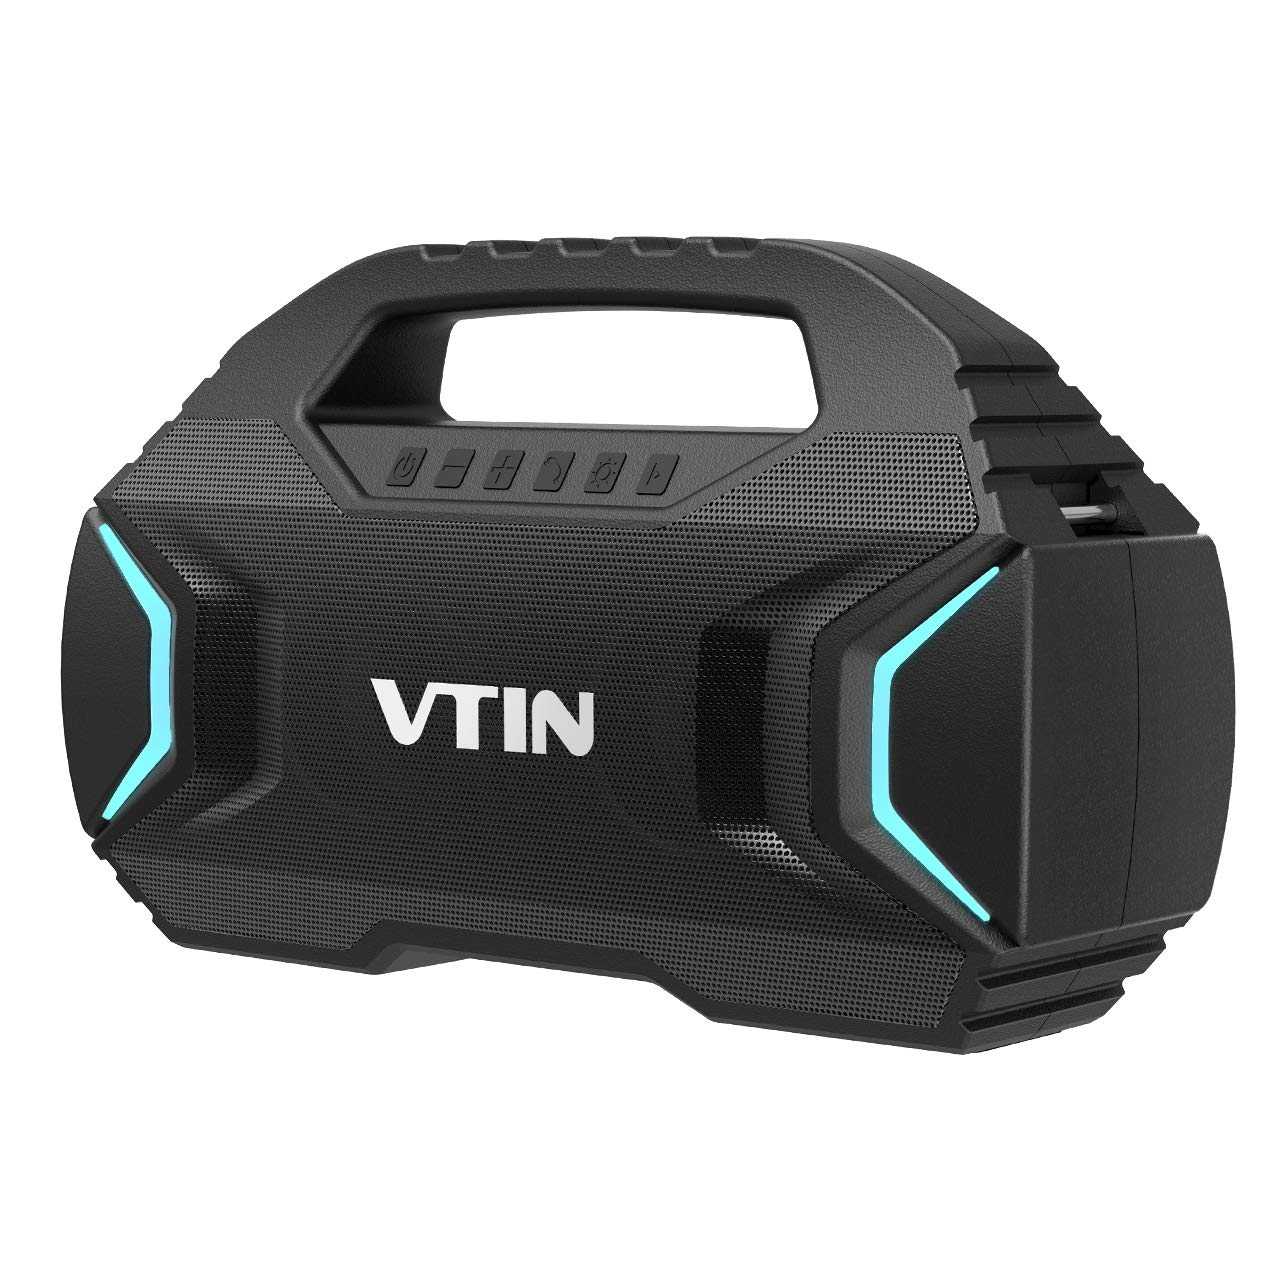 Bluetooth Speakers, VTIN R7 Waterproof Outdoor Speakers with Powerful Bass, 7 Lighting Mode, 50W Wireless Stereo Pairing Speaker with 30H Playtime,Durable for Home Party, Camping, Indoor, Outdoor by Vtin